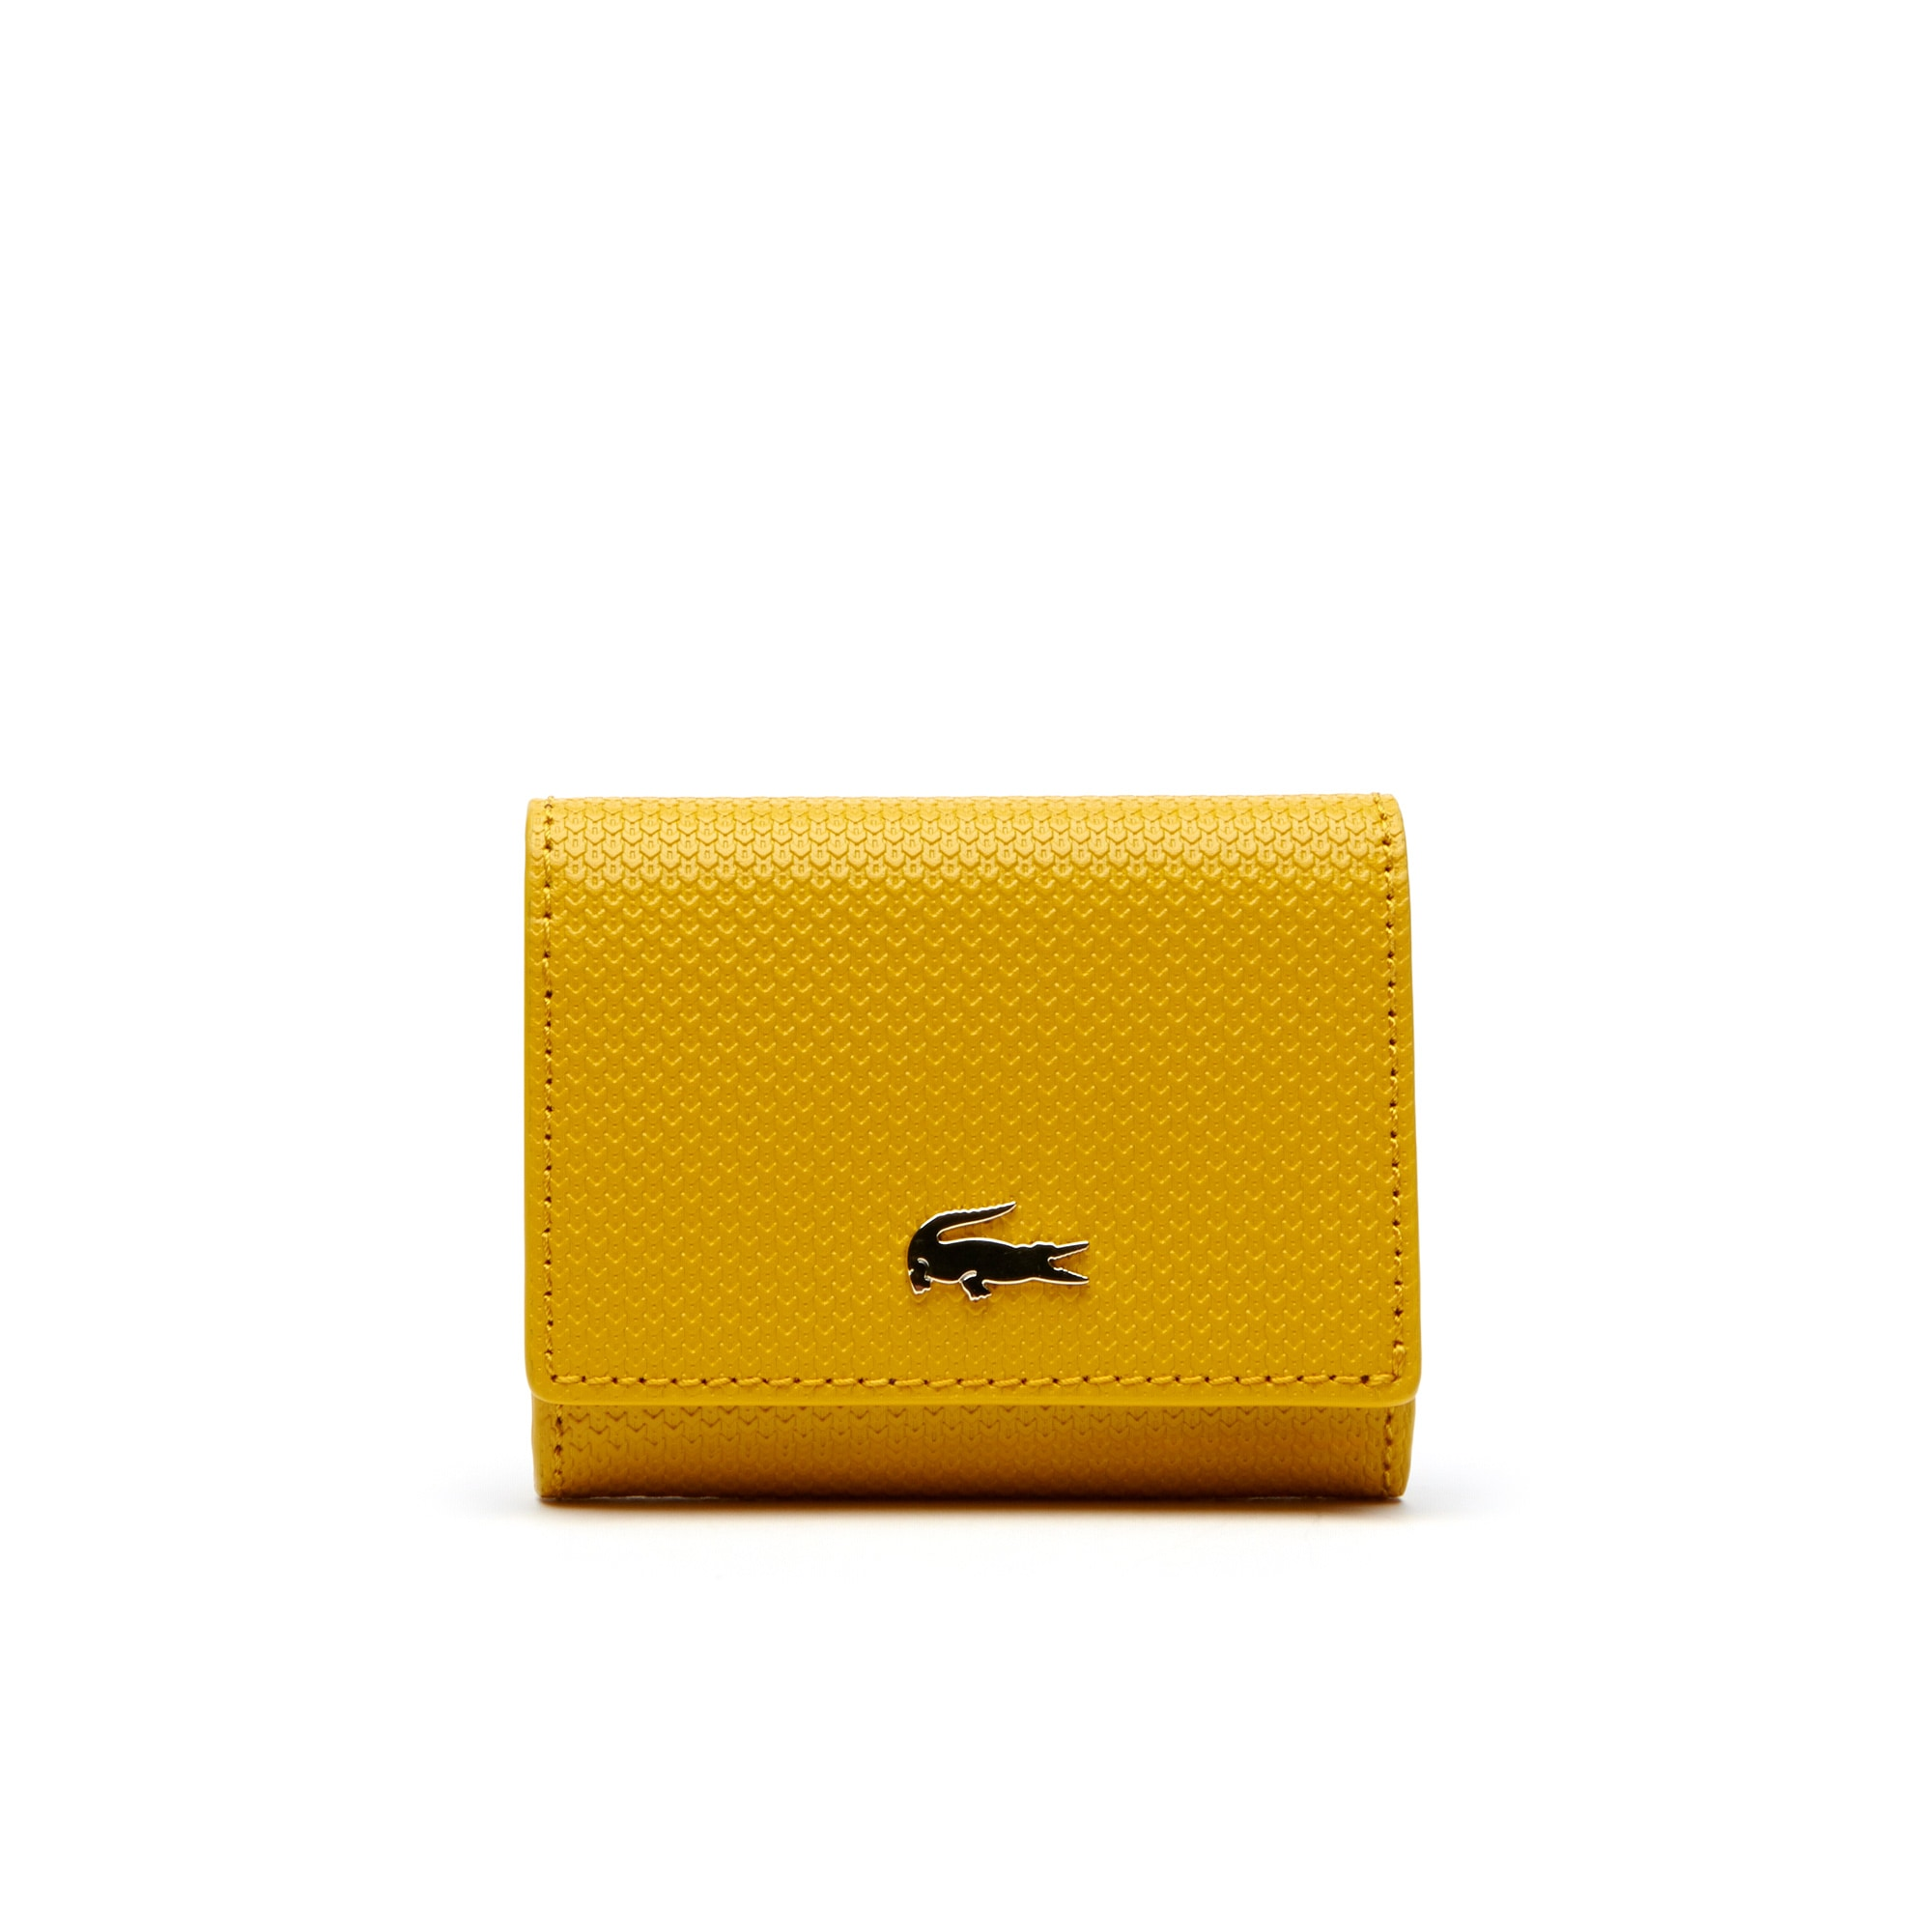 Women's Chantaco Bicolor Piqué Leather 3 Card Wallet